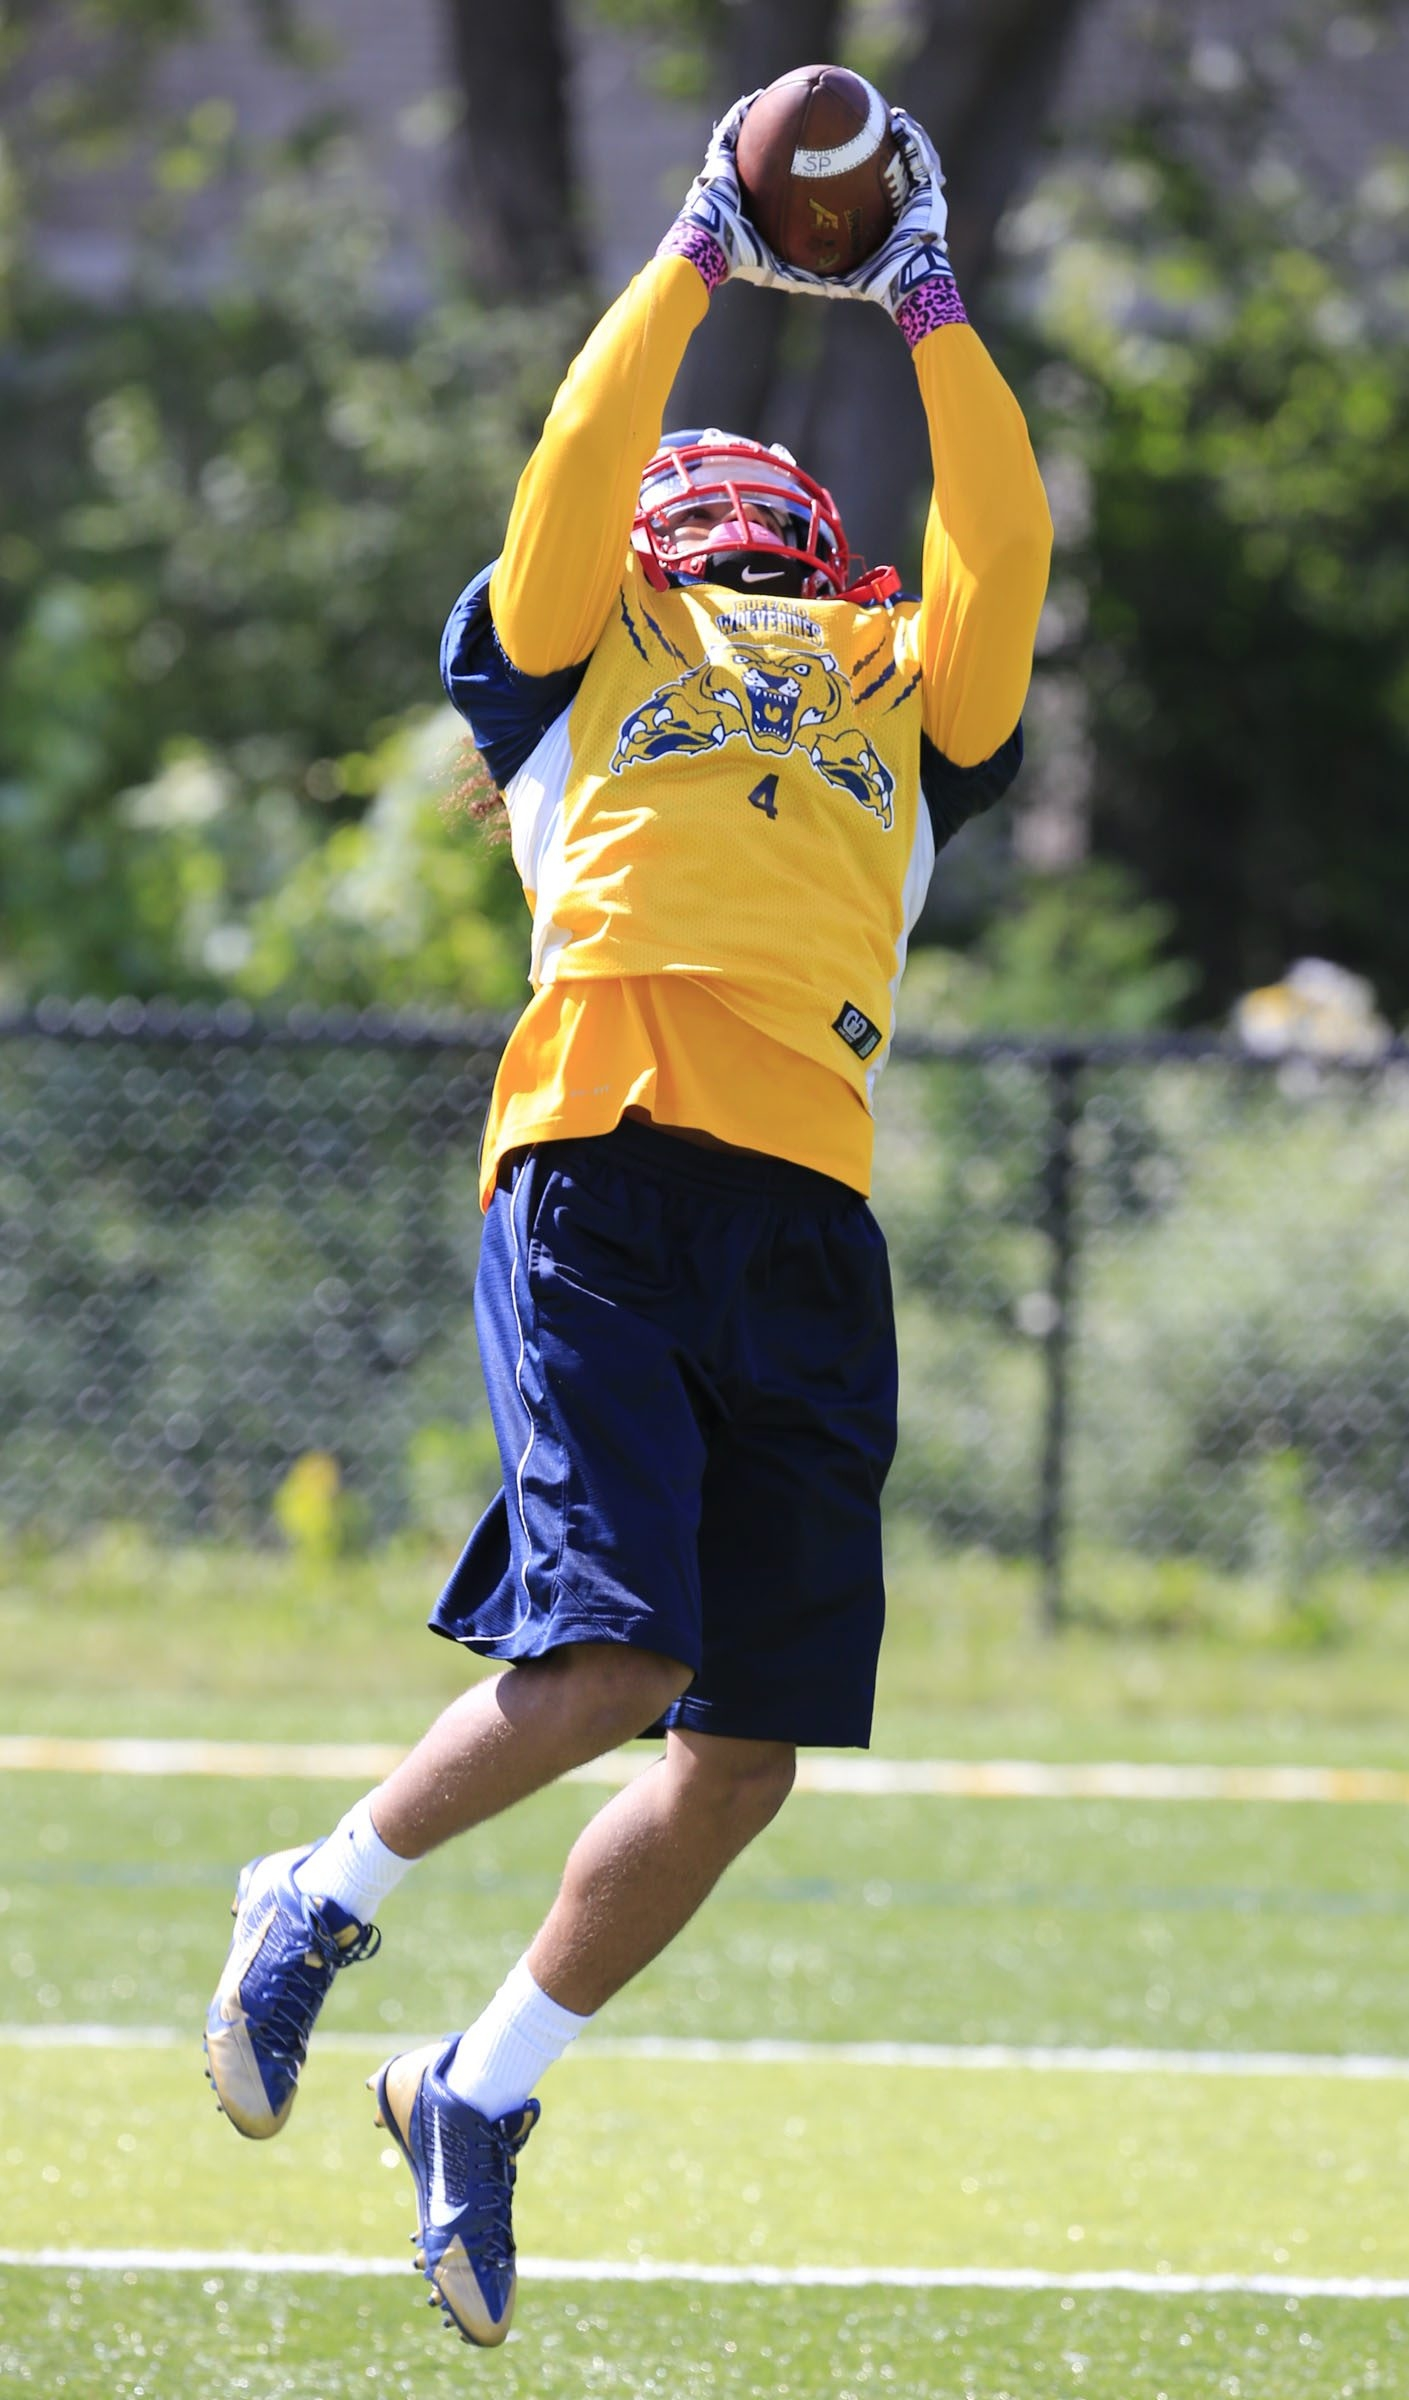 After making plays for Canisius last season, receiver David Thomas looks to do the same for defending division champion South Park.